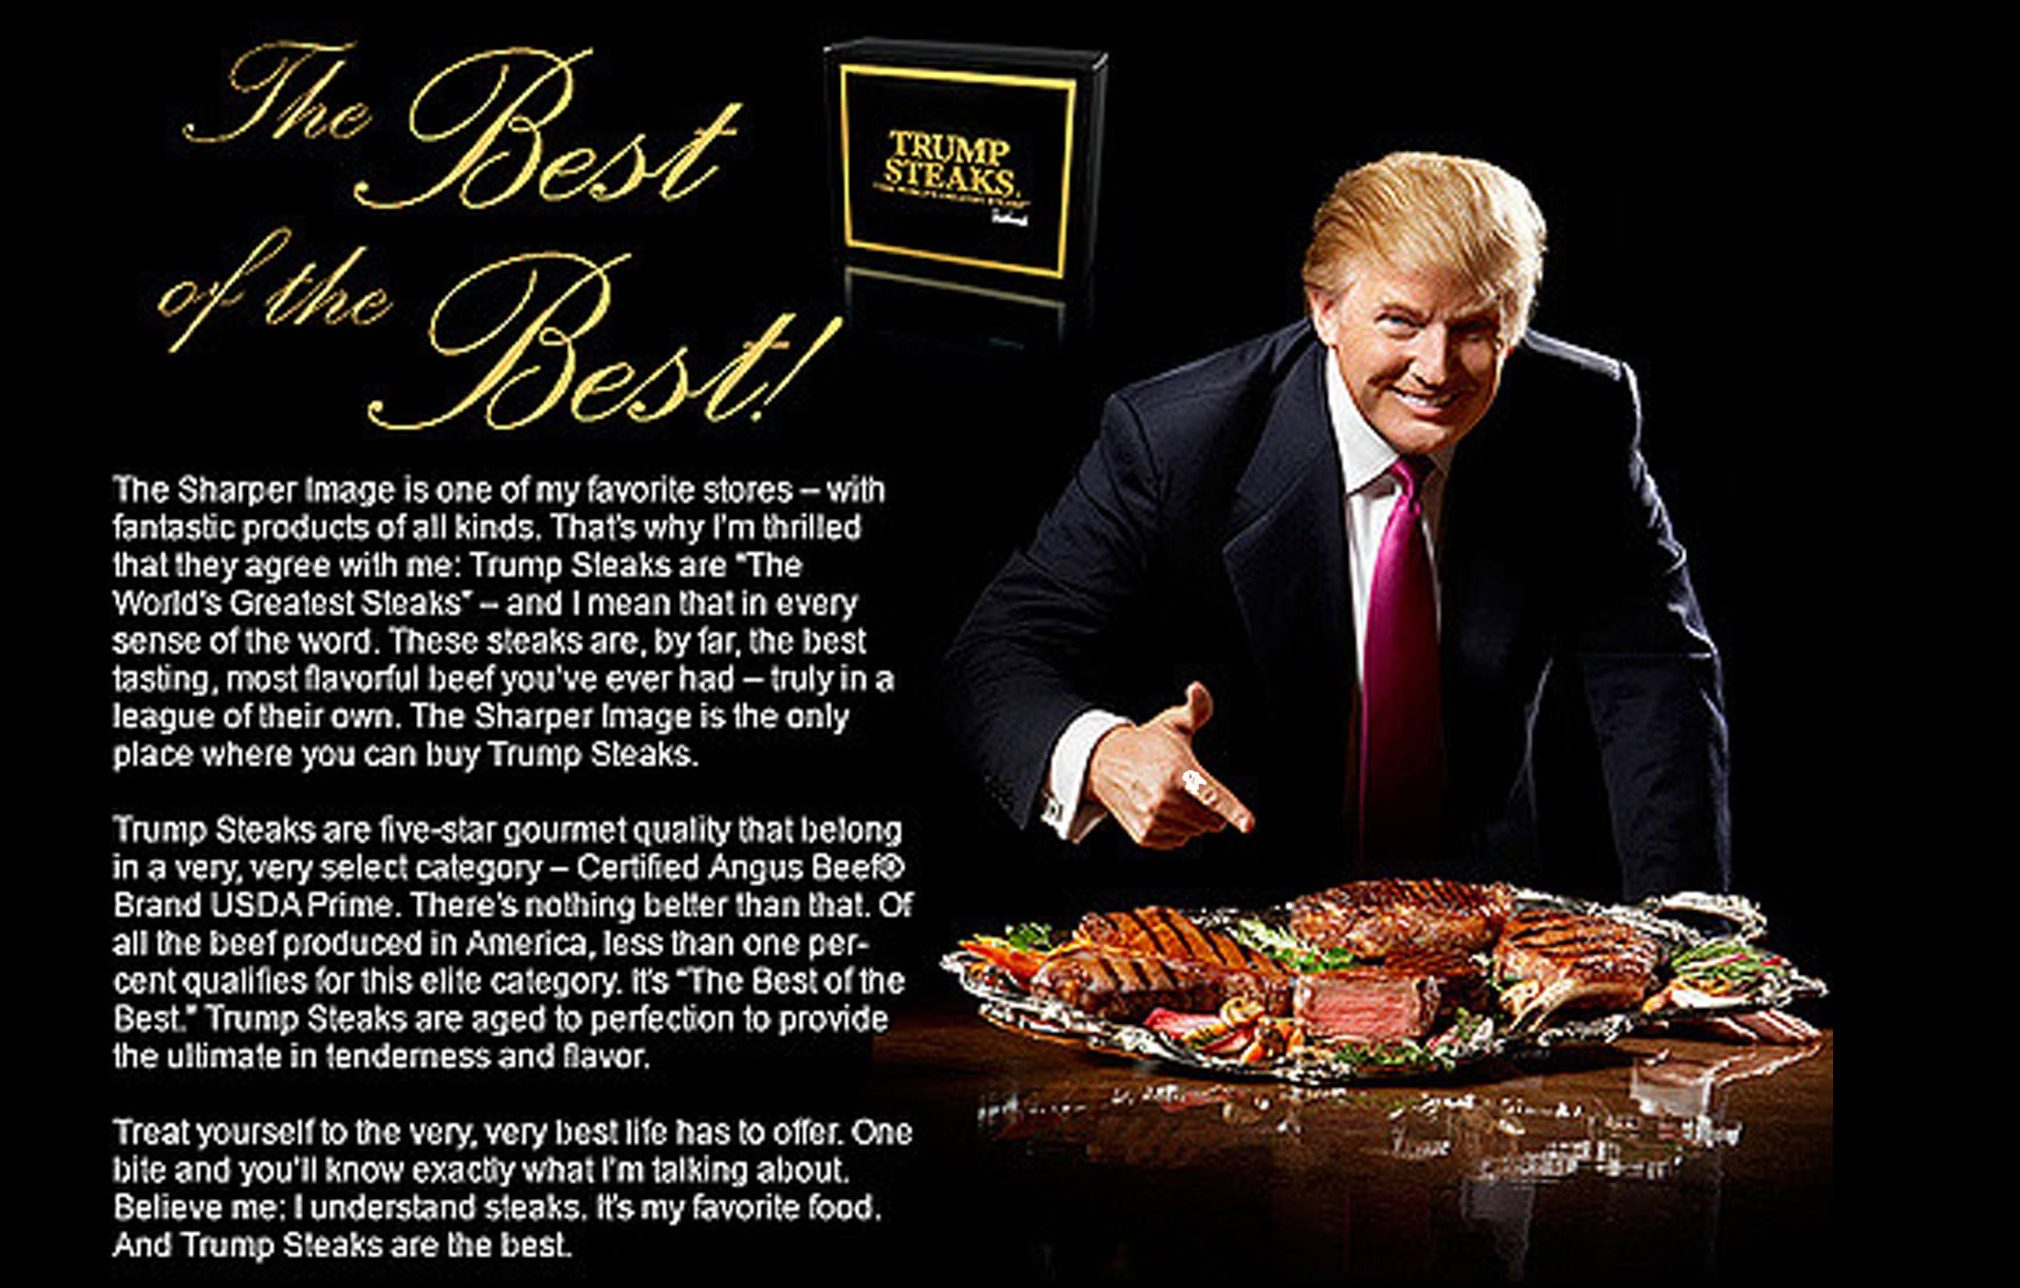 Trump Steaks ad